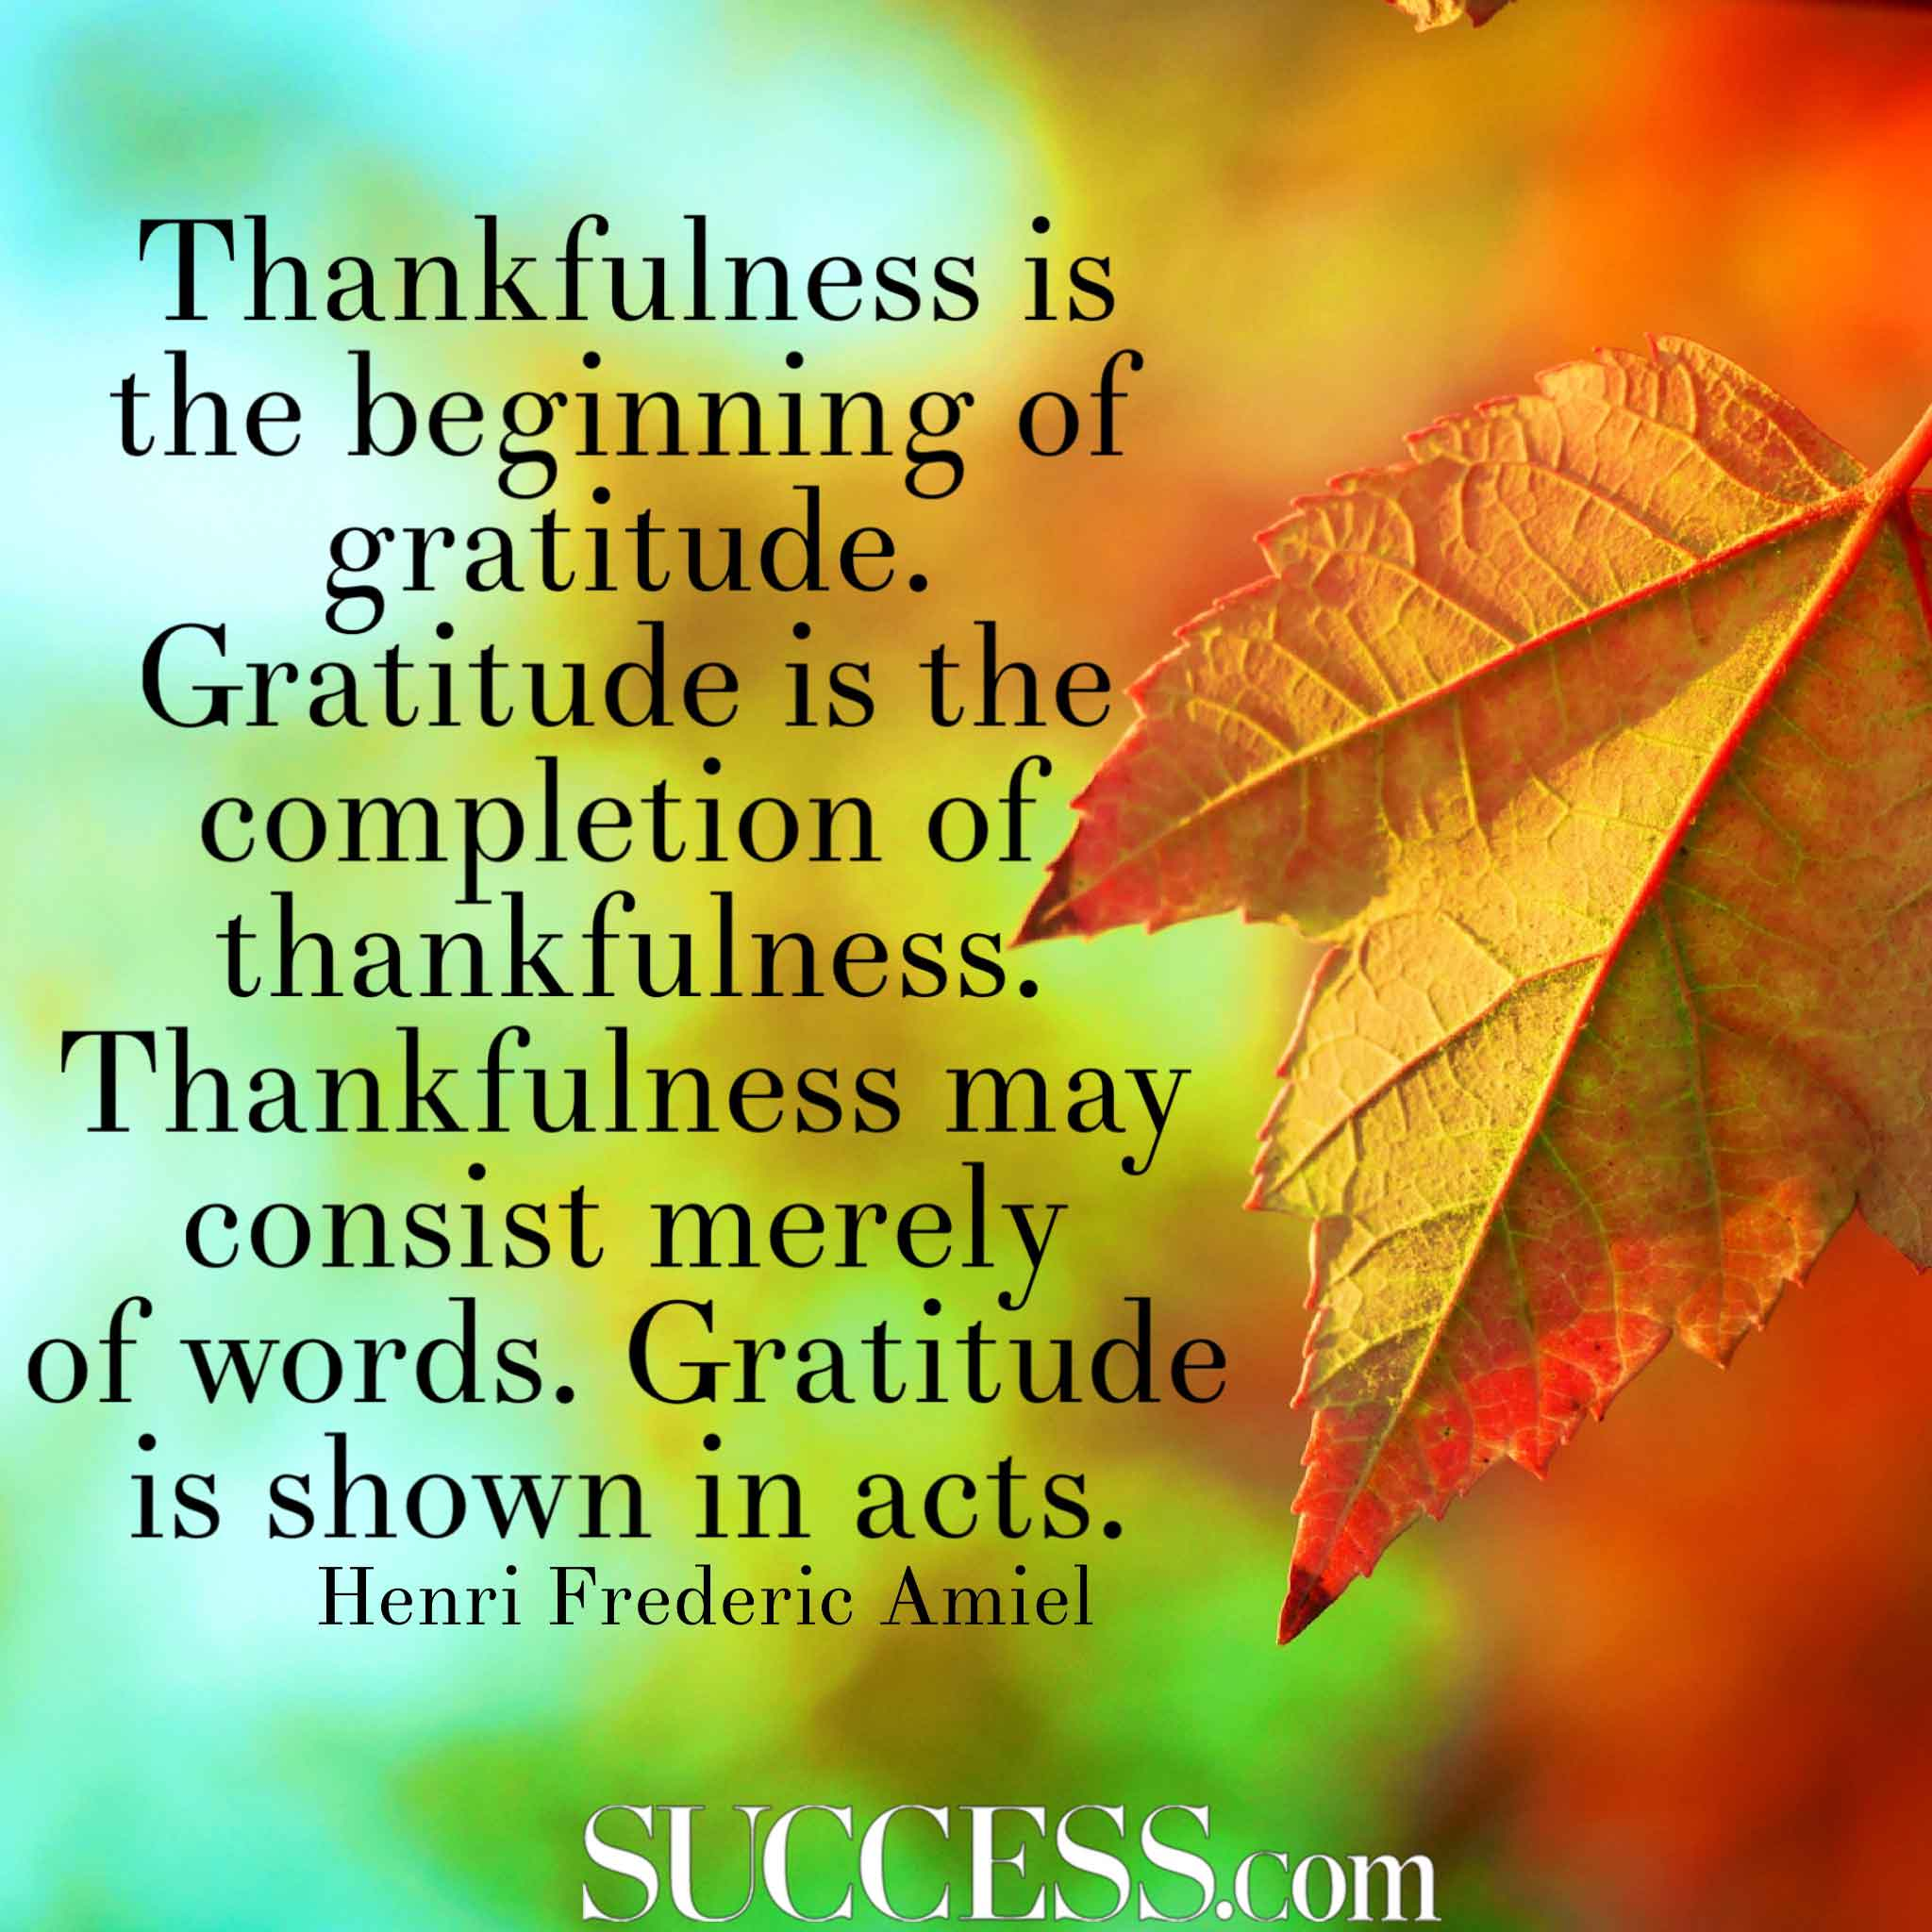 Words Of Thanks And Appreciation Quotes: 32 Quotes About Gratitude